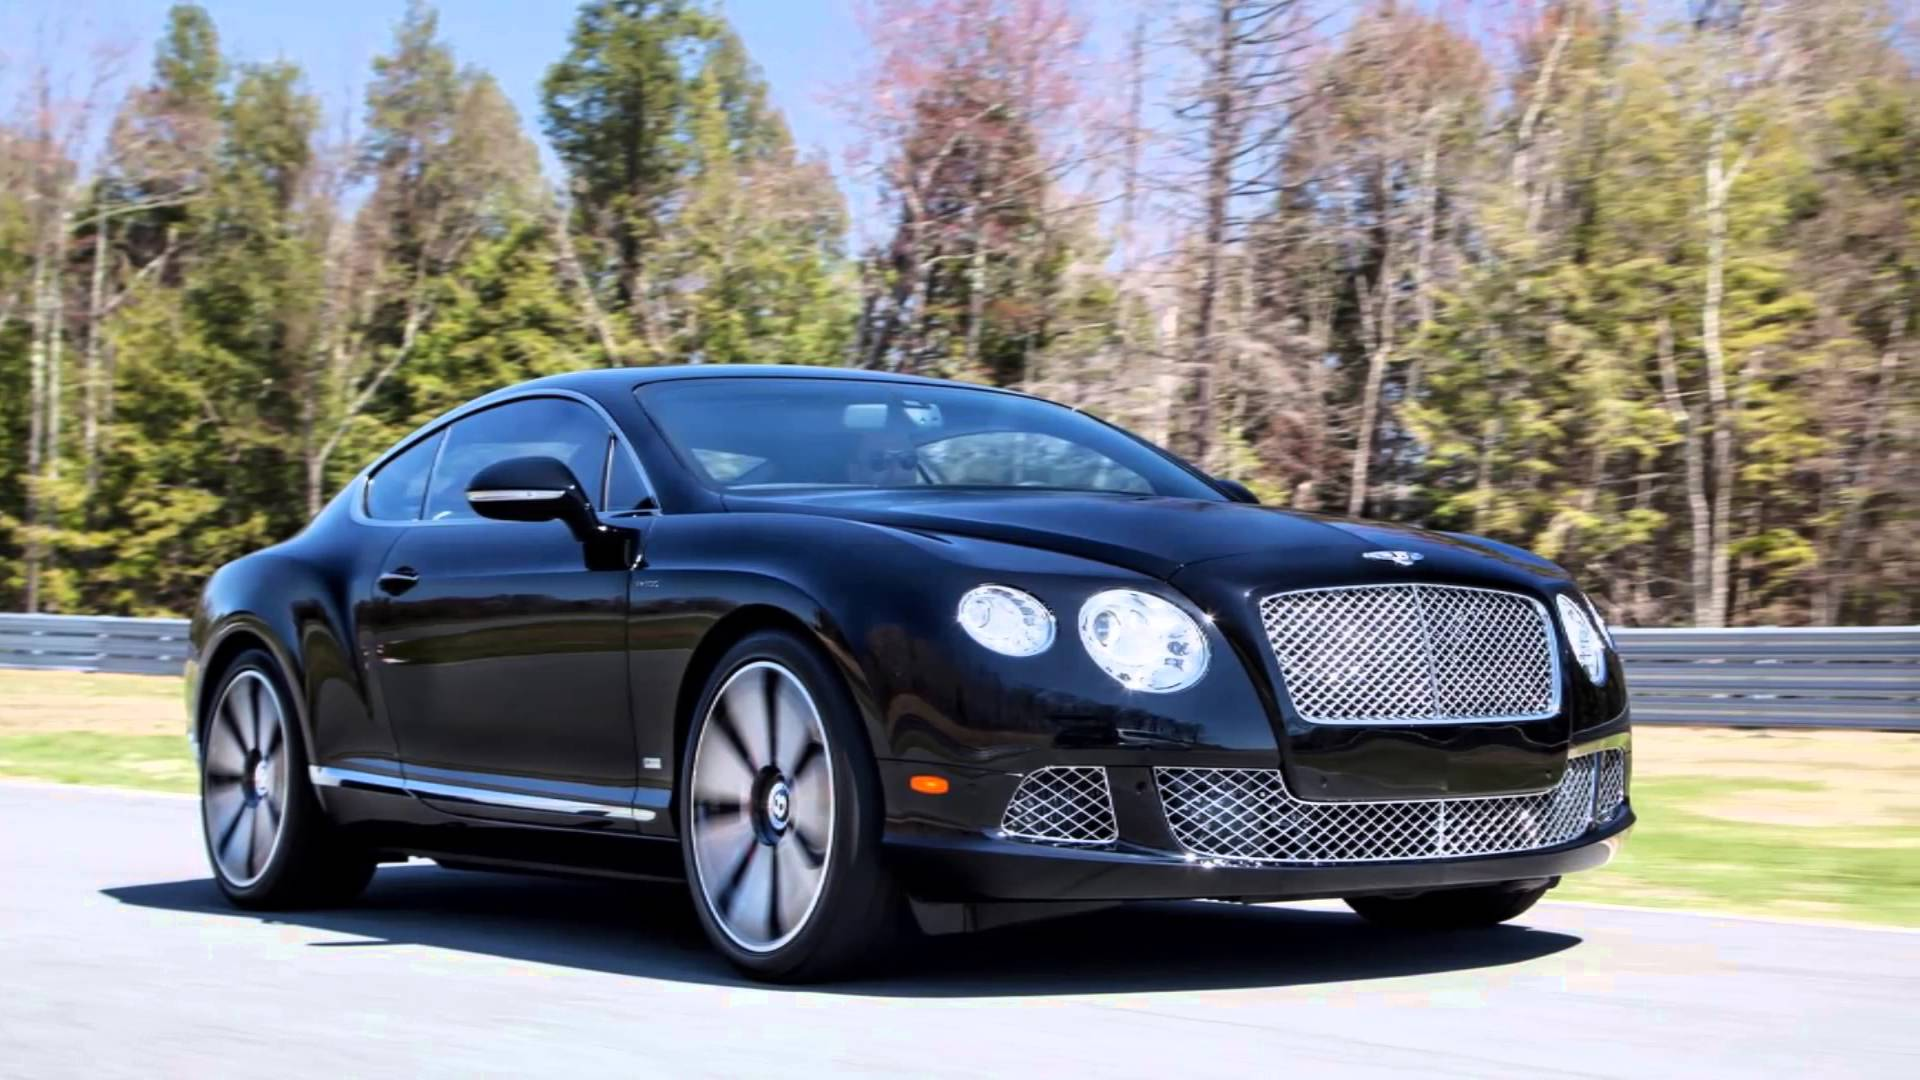 2014 Bentley Continental GT W12 Le Mans Edition on 21""